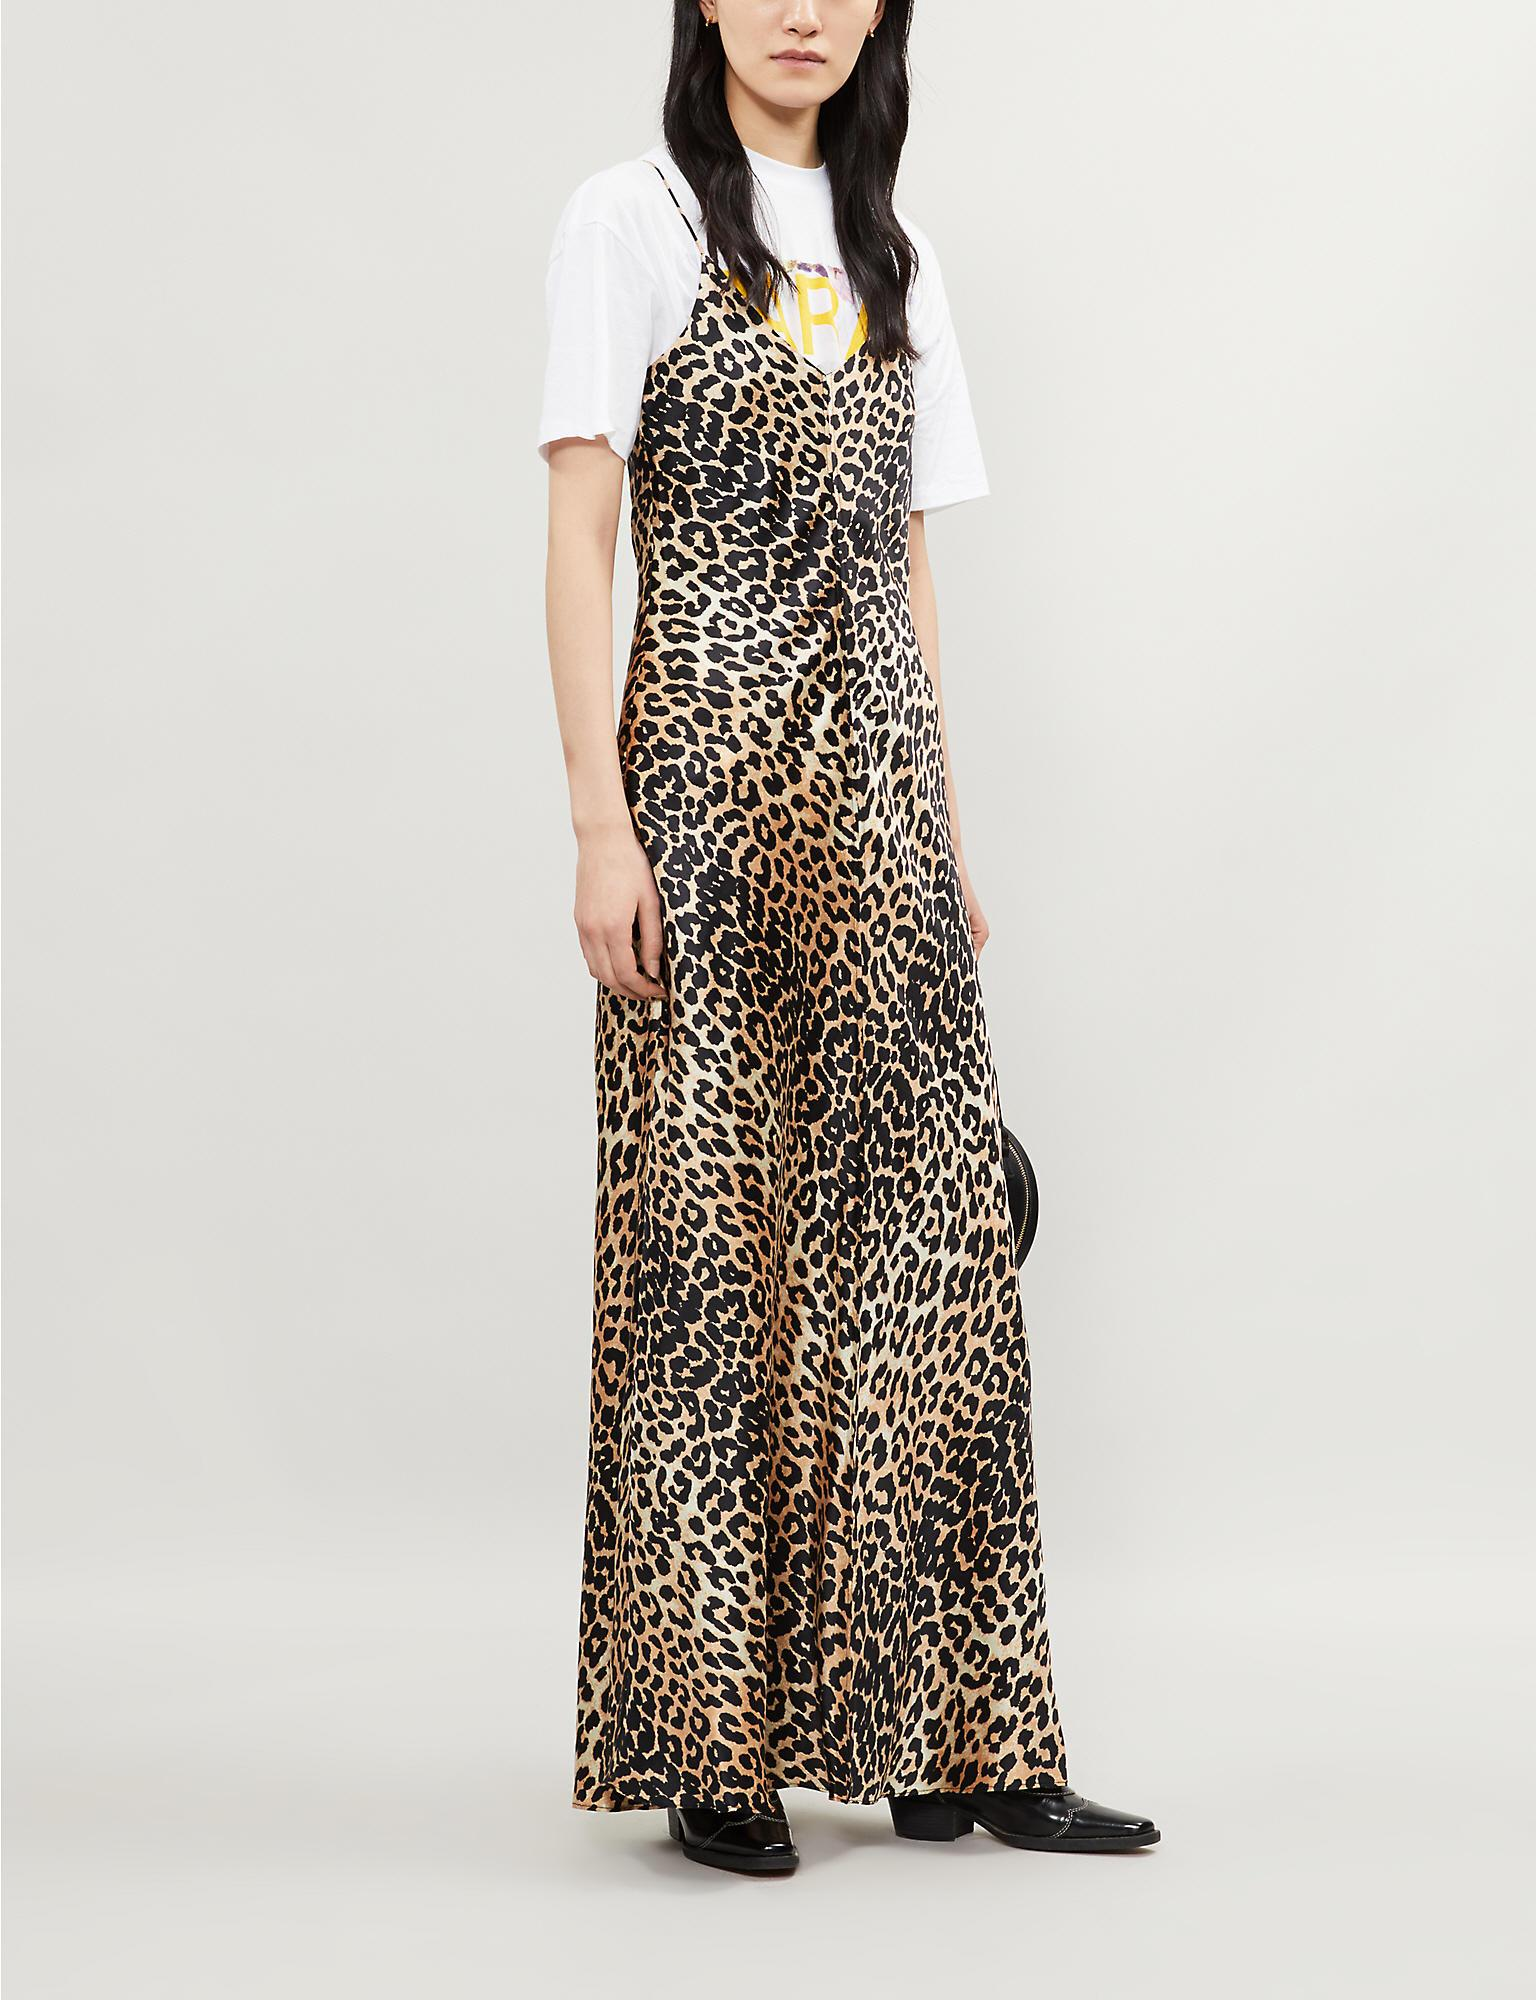 21cc9908 Ganni Blakely Leopard Print Silk Blend Slip Dress - Save 30% - Lyst